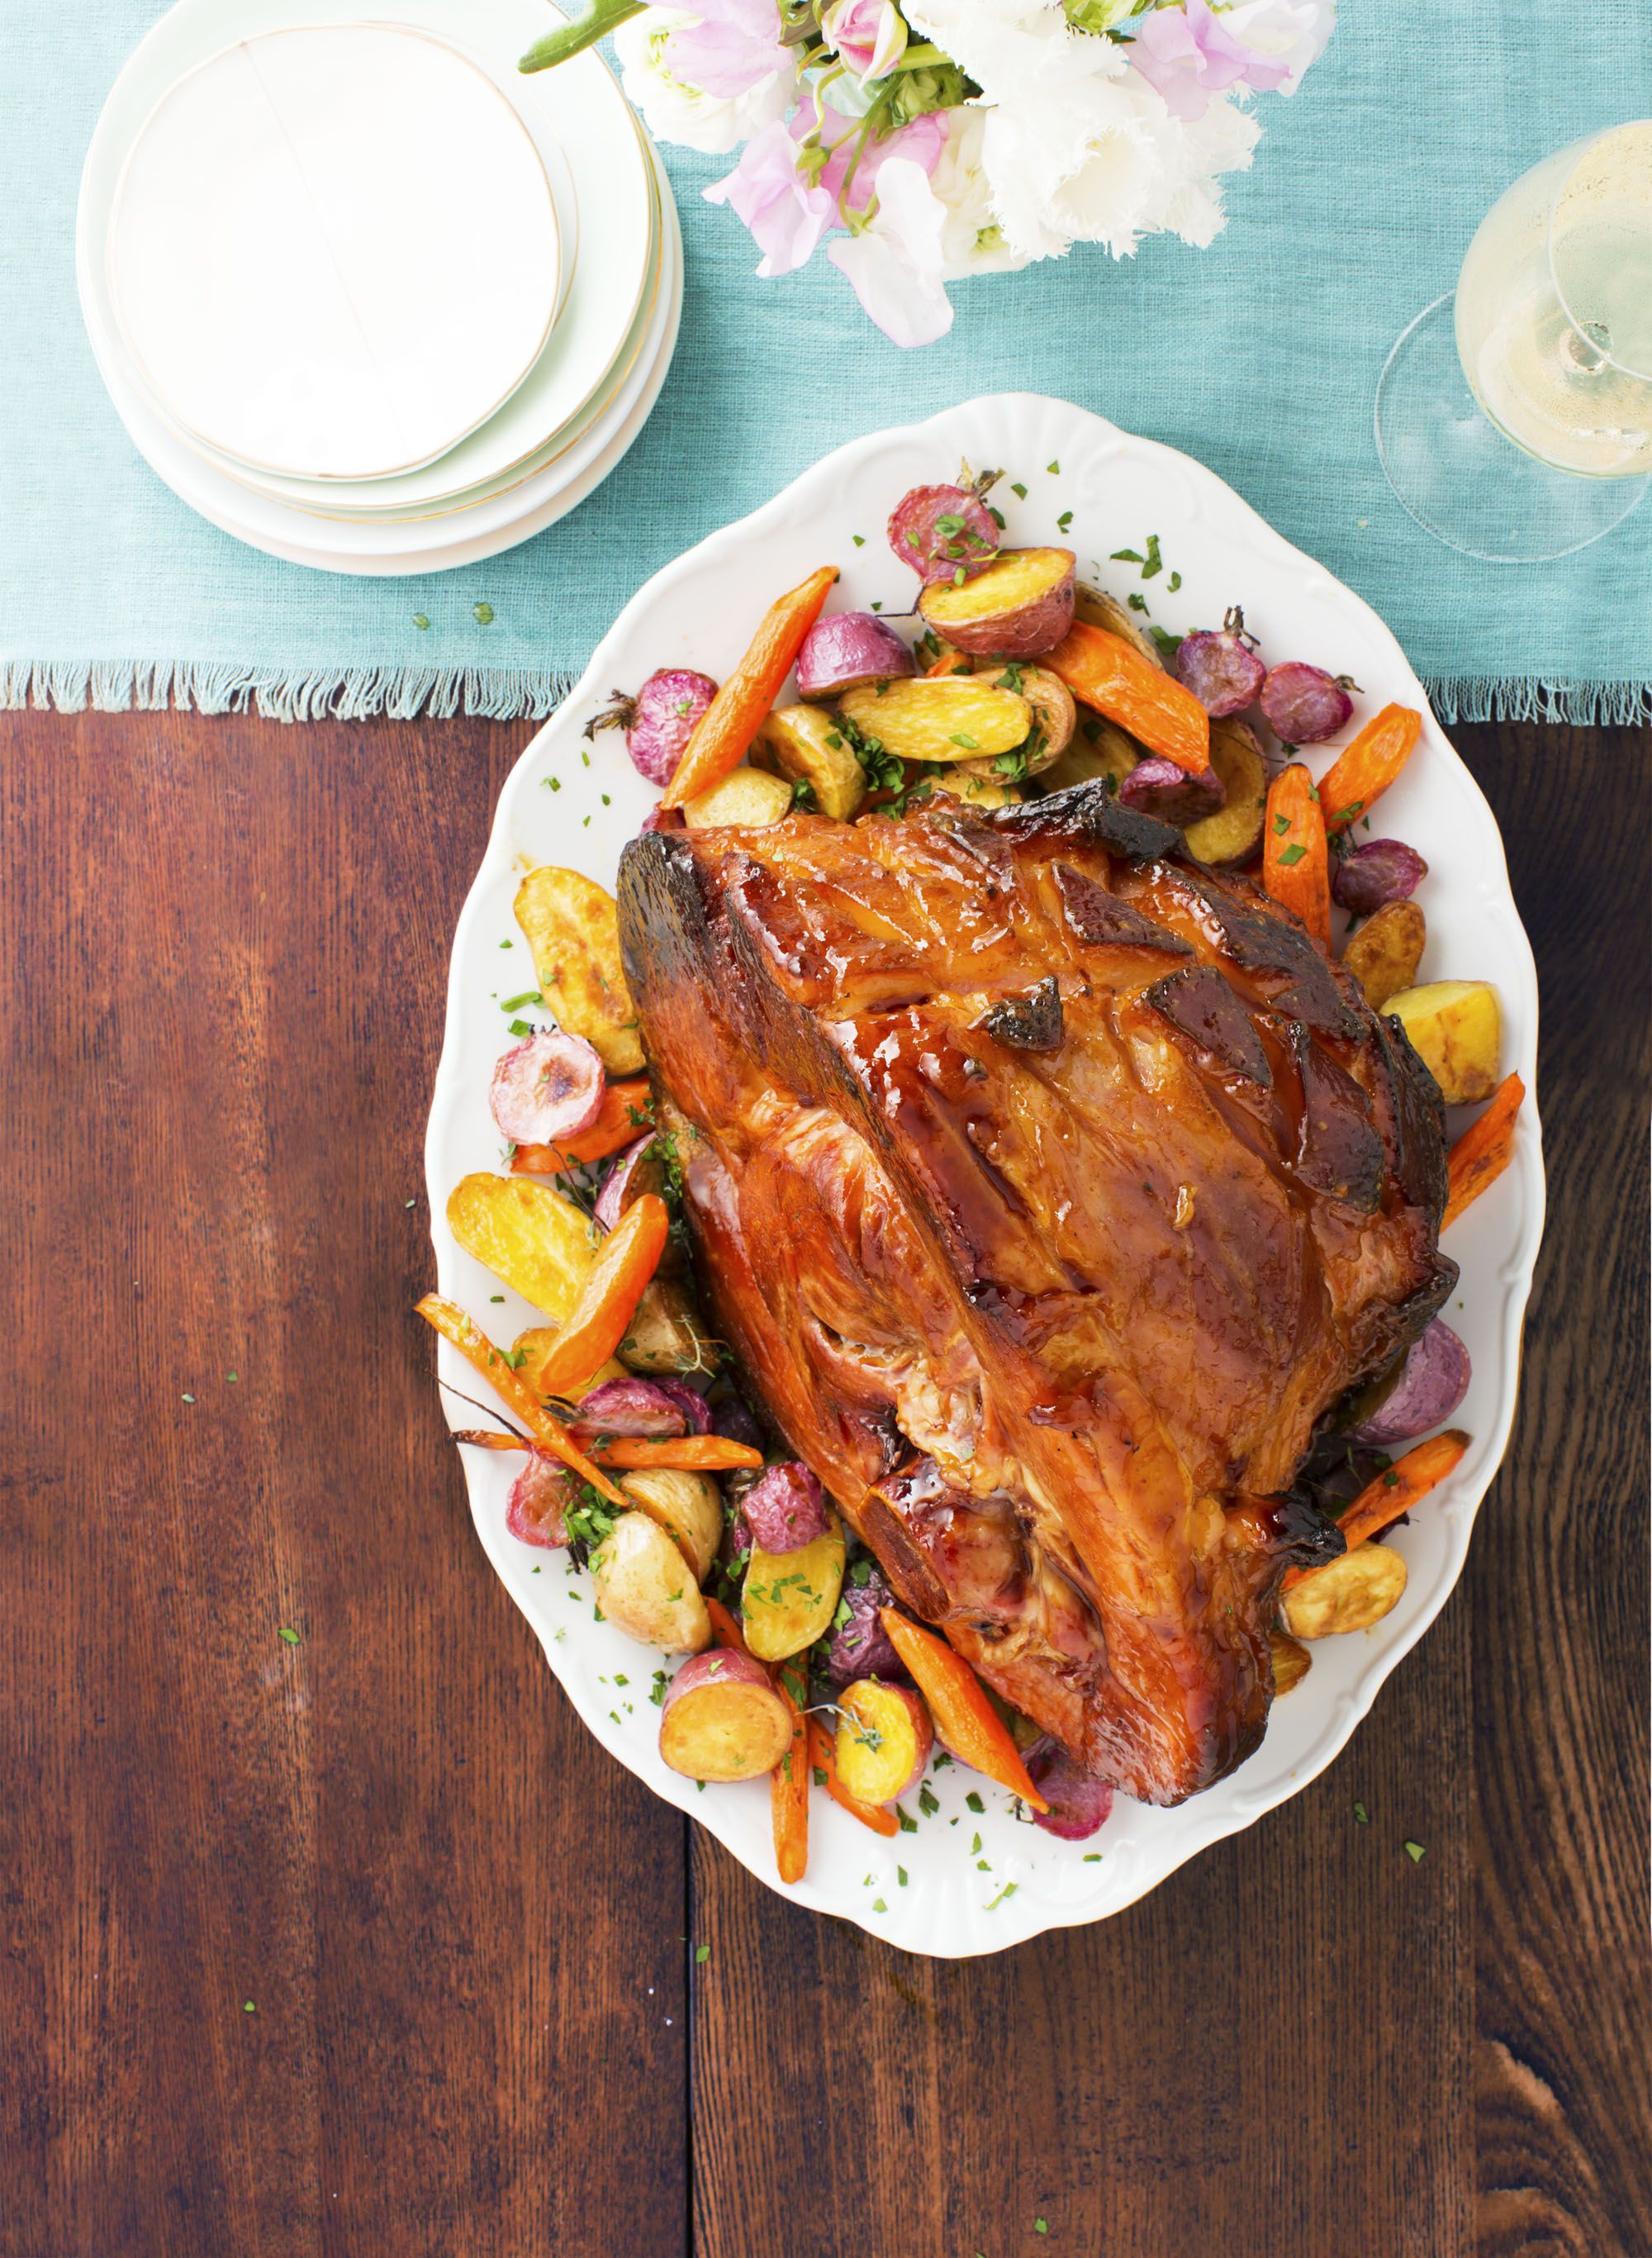 APRICOT MUSTARD HAM WITH HERB ROASTED ROOT VEGETABLES